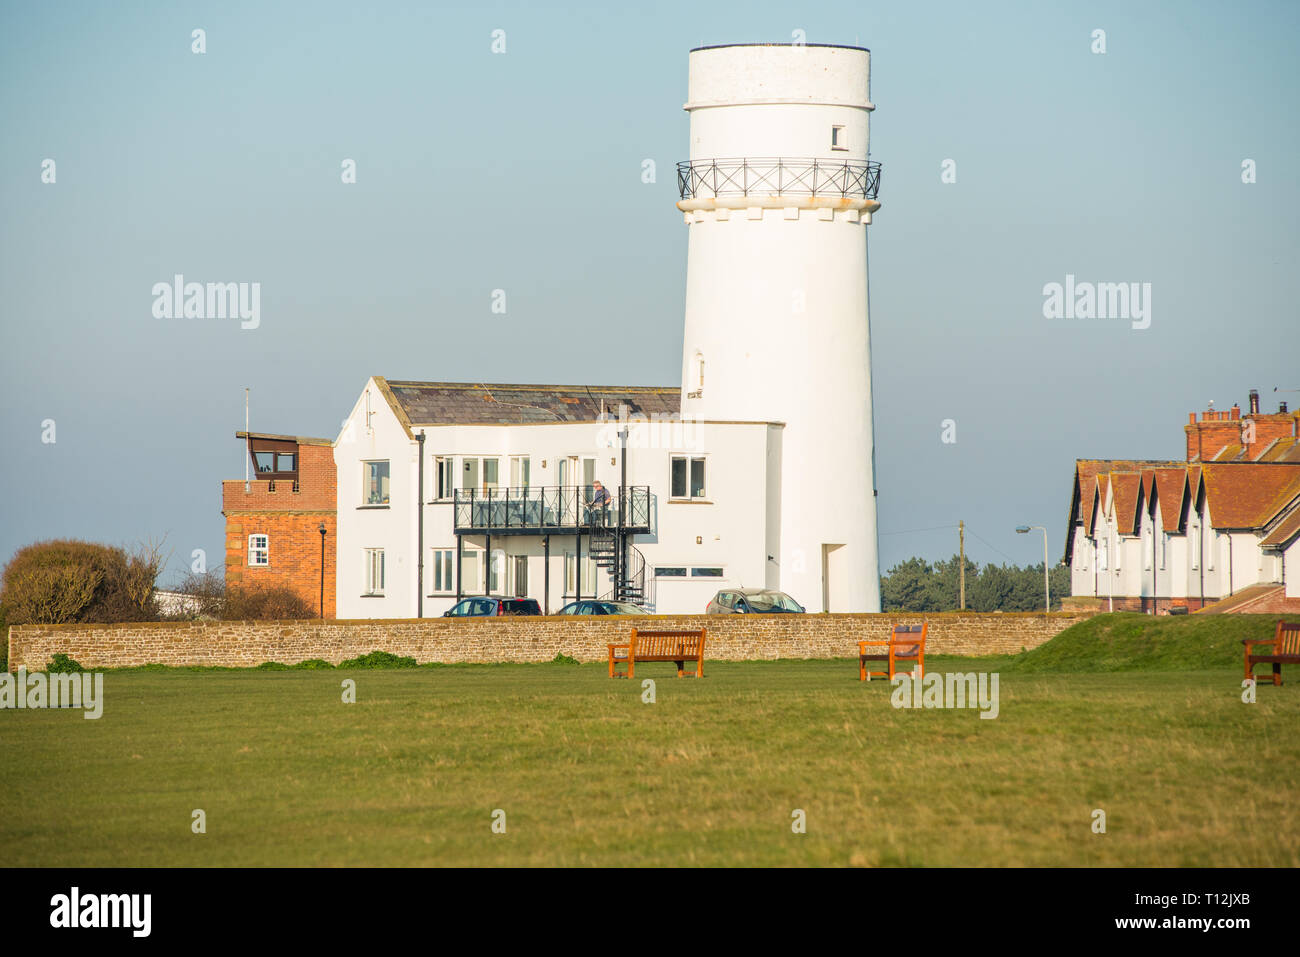 The old lighthouse at the top of the cliffs in Hunstanton, now used for holiday lets. Norfolk coast, England, UK. - Stock Image